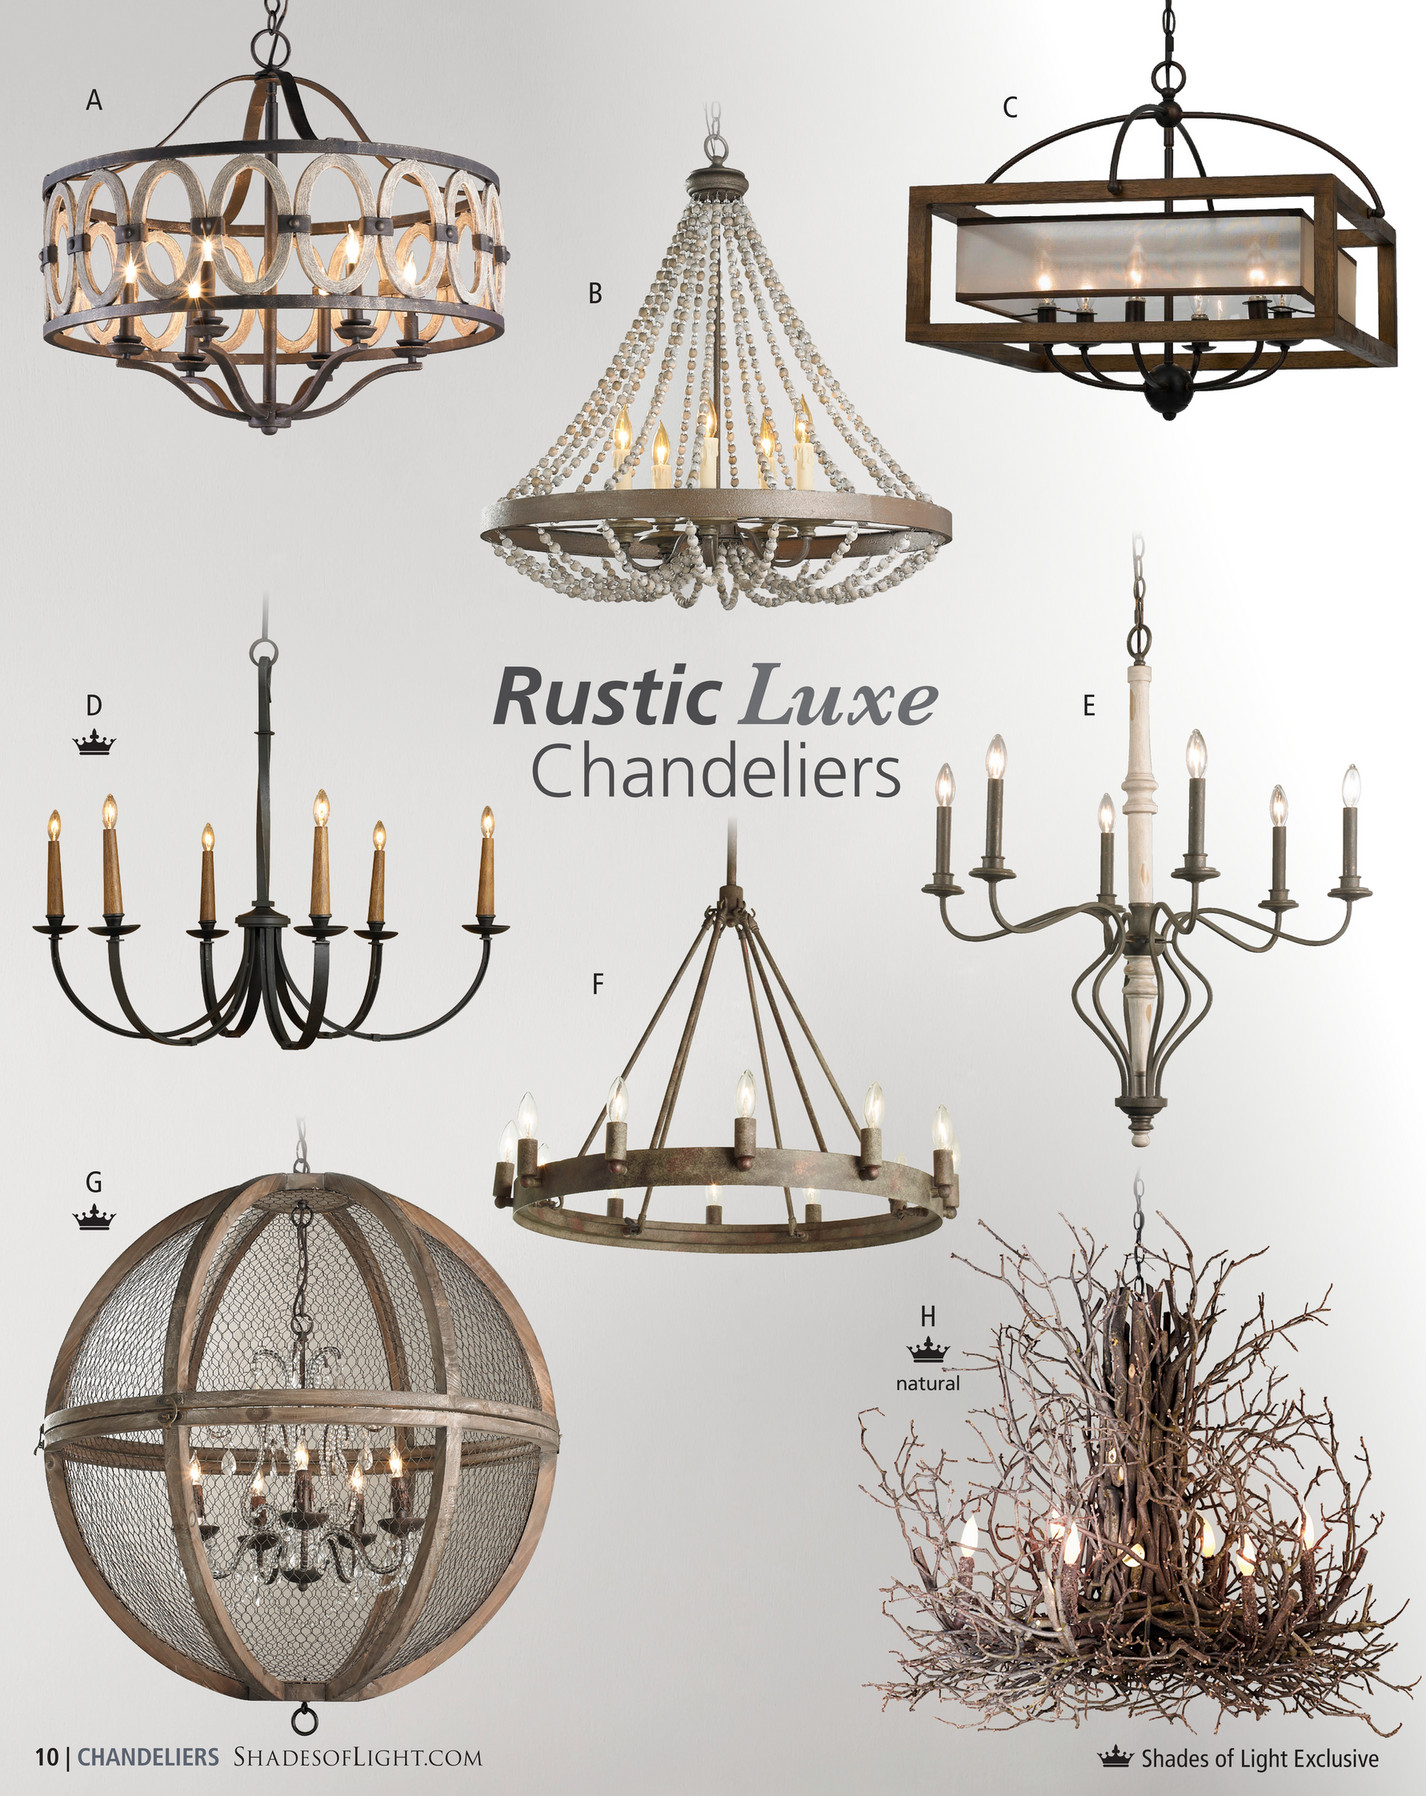 White washed wood sphere chandelier chandeliers by shades of light - A Driftwood Entwined Ovals Chandelier Metal Ovals With A Driftwood Finish Surround A Candelabra Style Cluster Of Gold Bronze Or Classic White 6x60 Watts